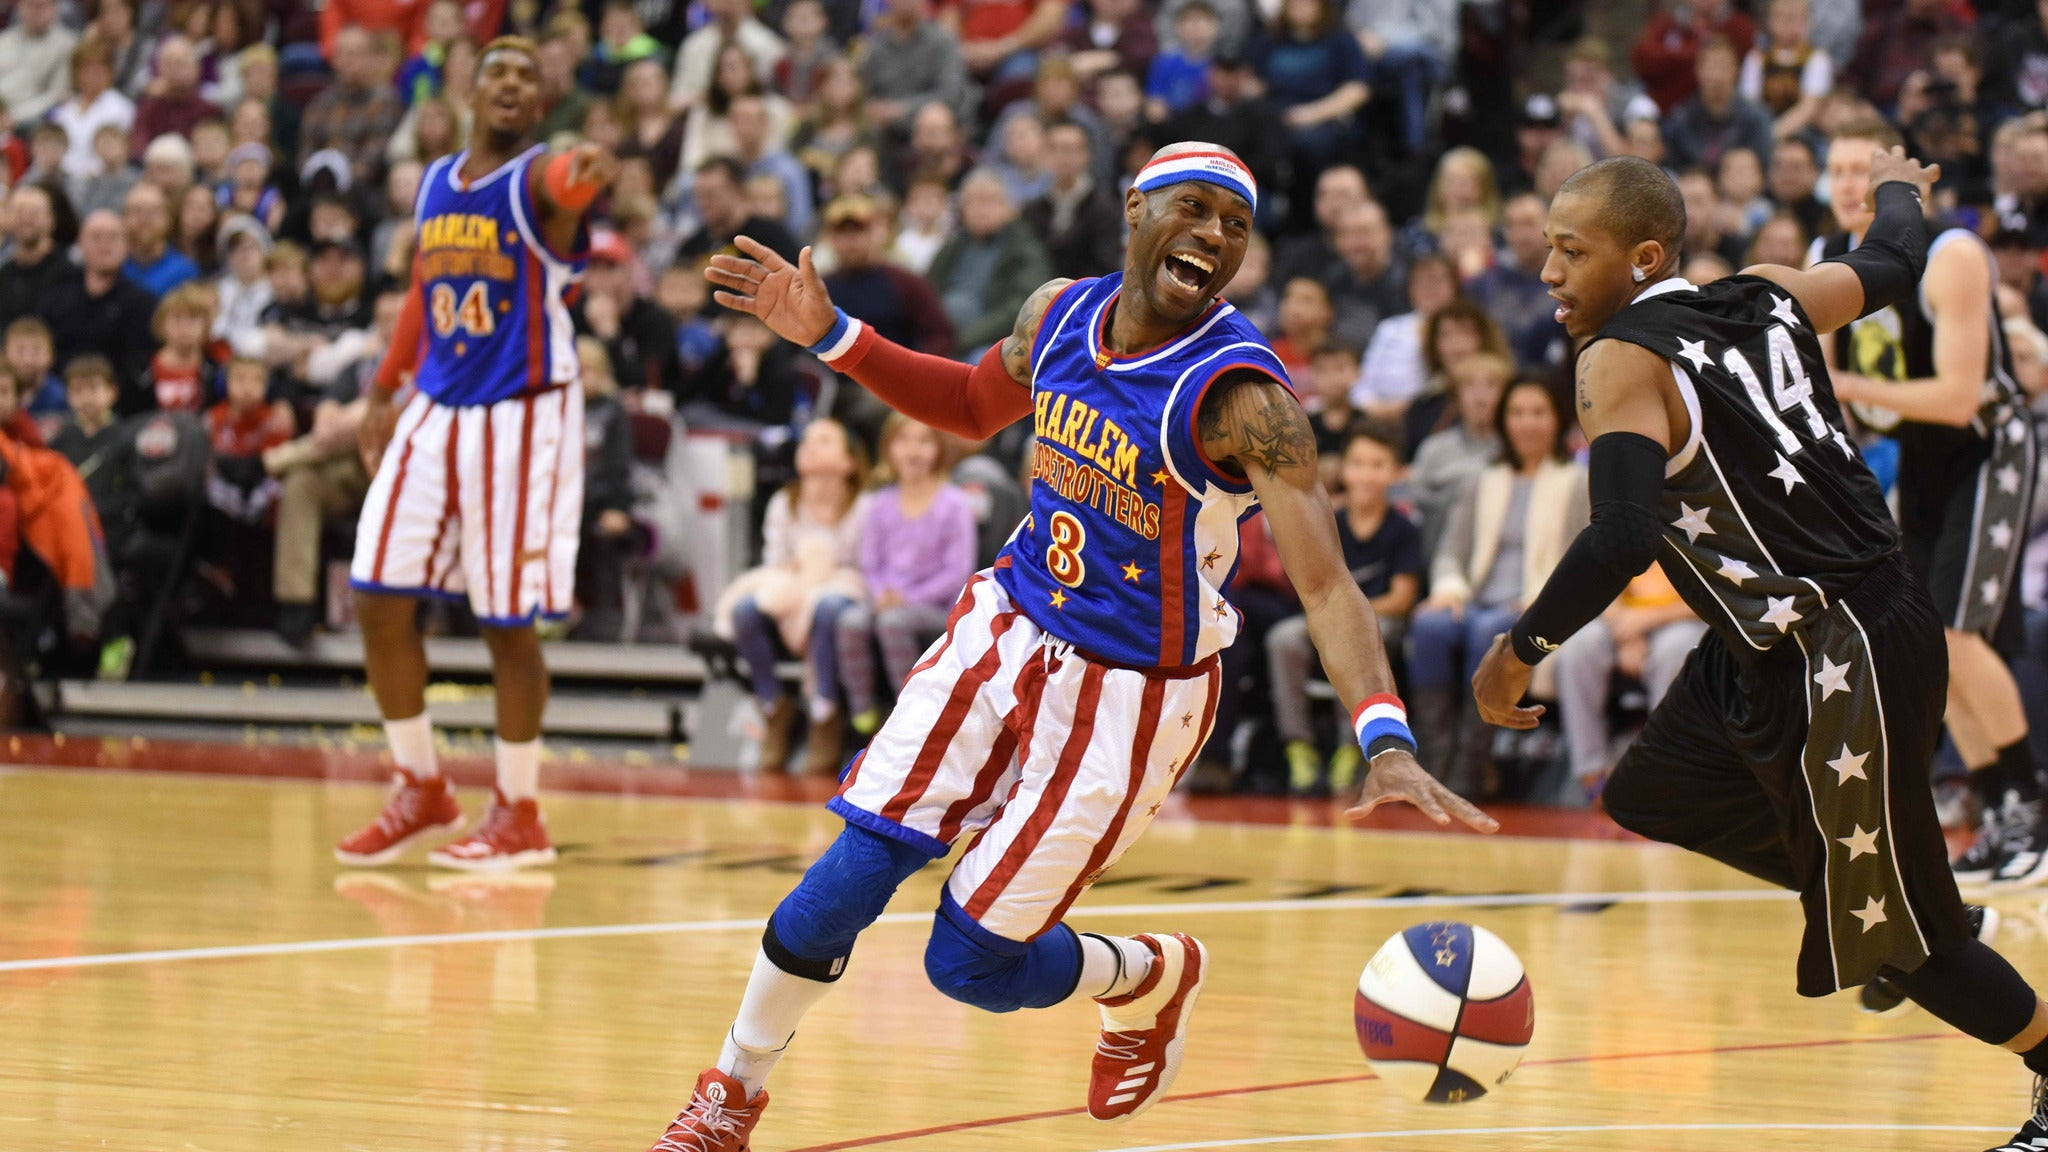 Harlem Globetrotters at First National Bank Arena